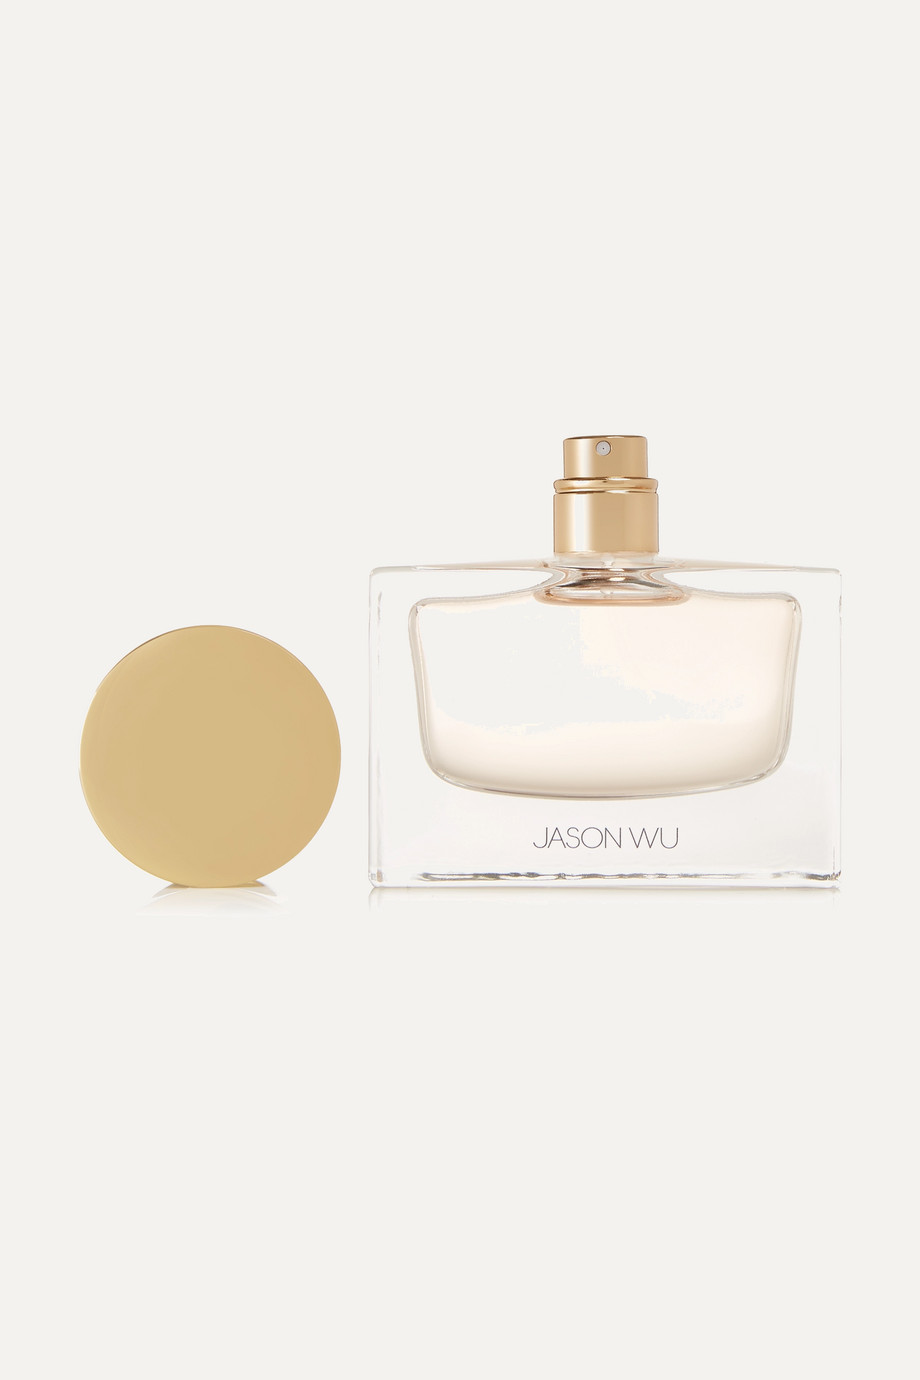 Jason Wu Beauty Eau de Parfum, 30ml